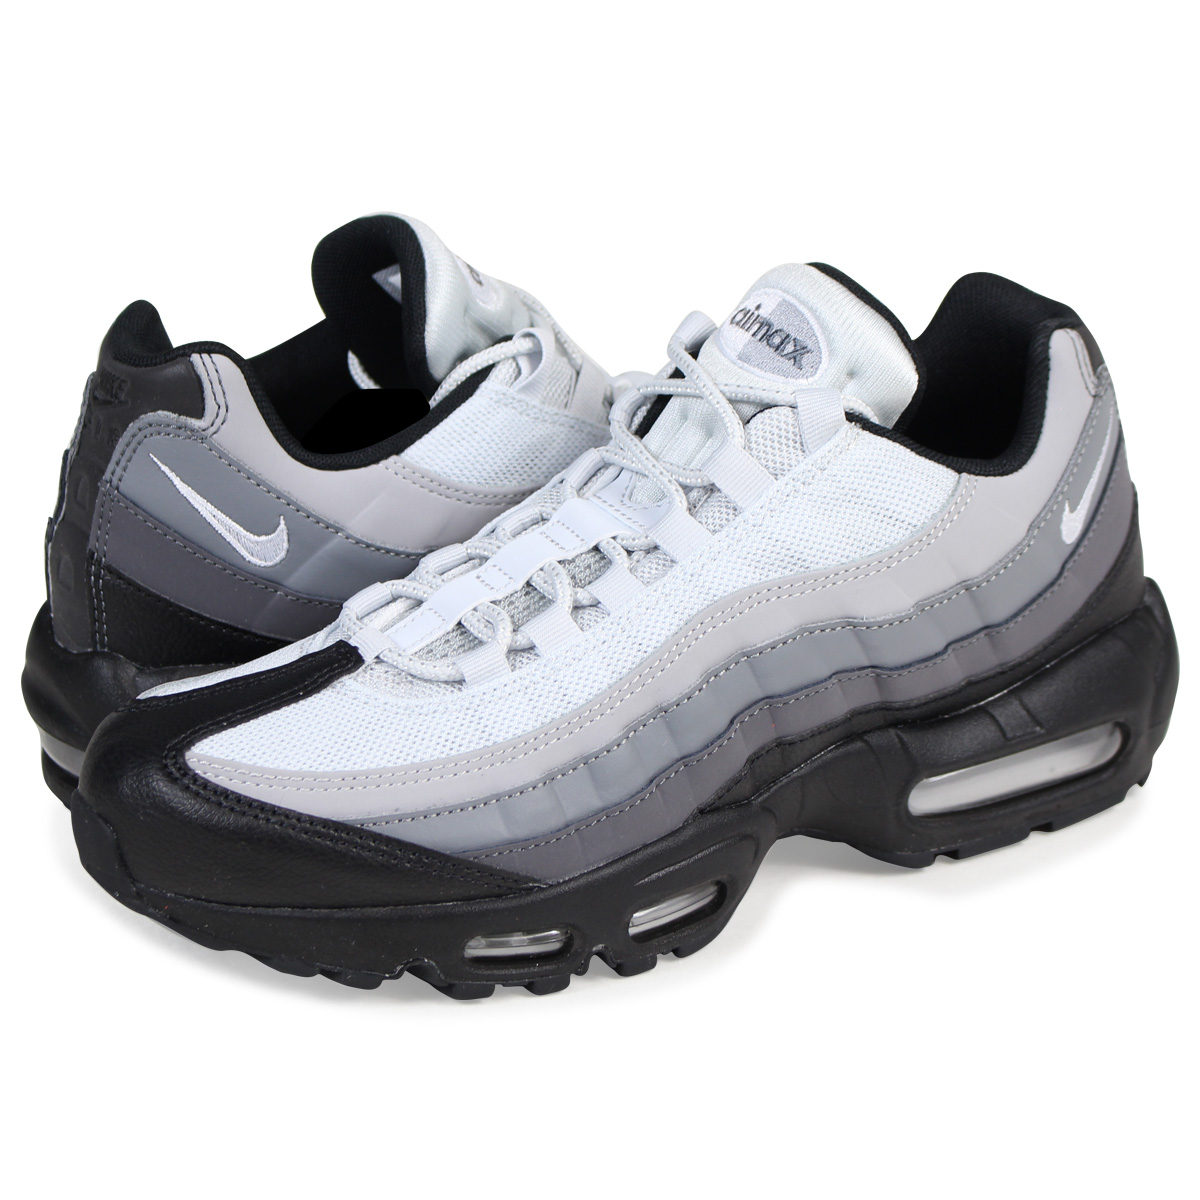 check out 96d91 2f05f NIKE AIR MAX 95 ESSENTIAL Kie Ney AMAX 95 essential sneakers 749,766-022 men s  shoes black  load planned Shinnyu load in reservation product 10 13 ...